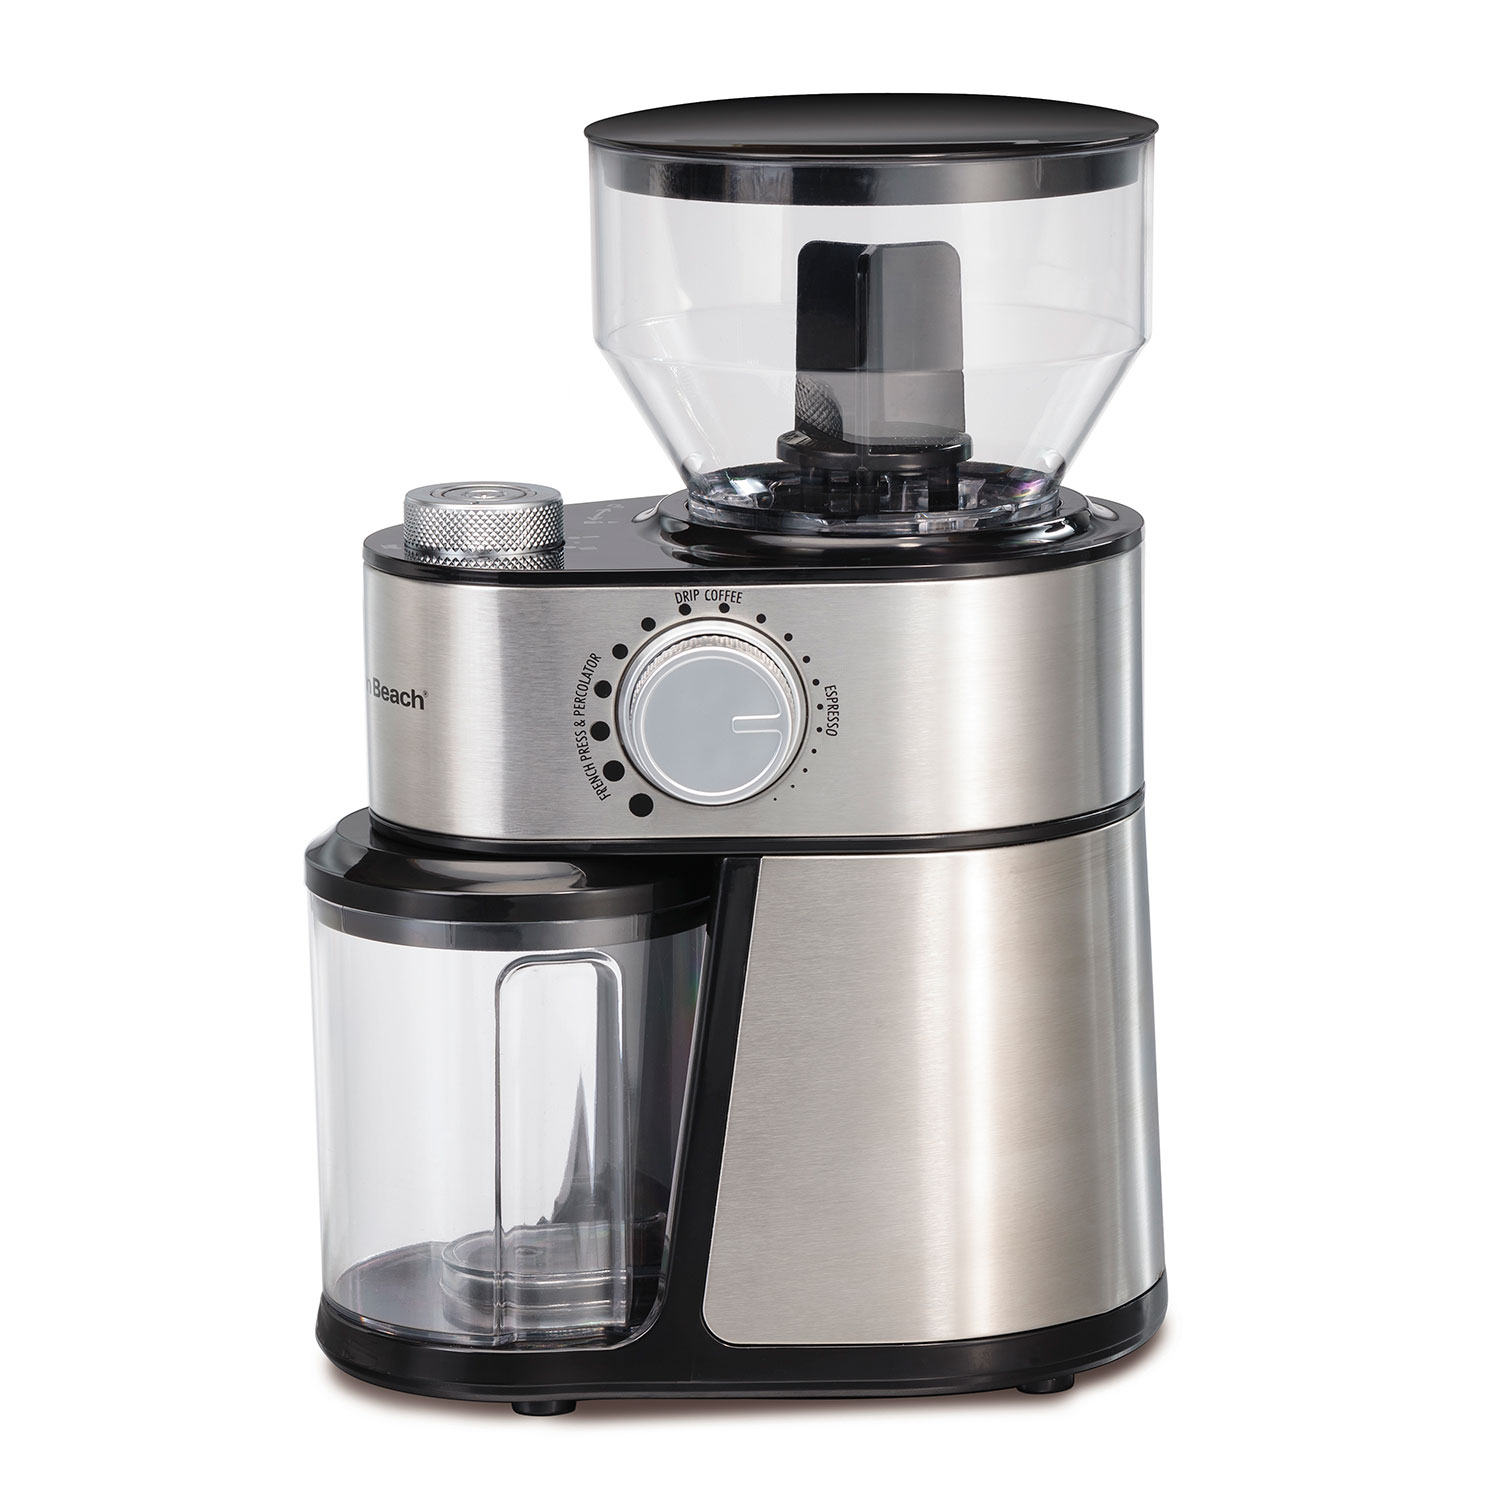 2-14 Cup Burr Coffee Grinder with 18 Grind Settings (80382)